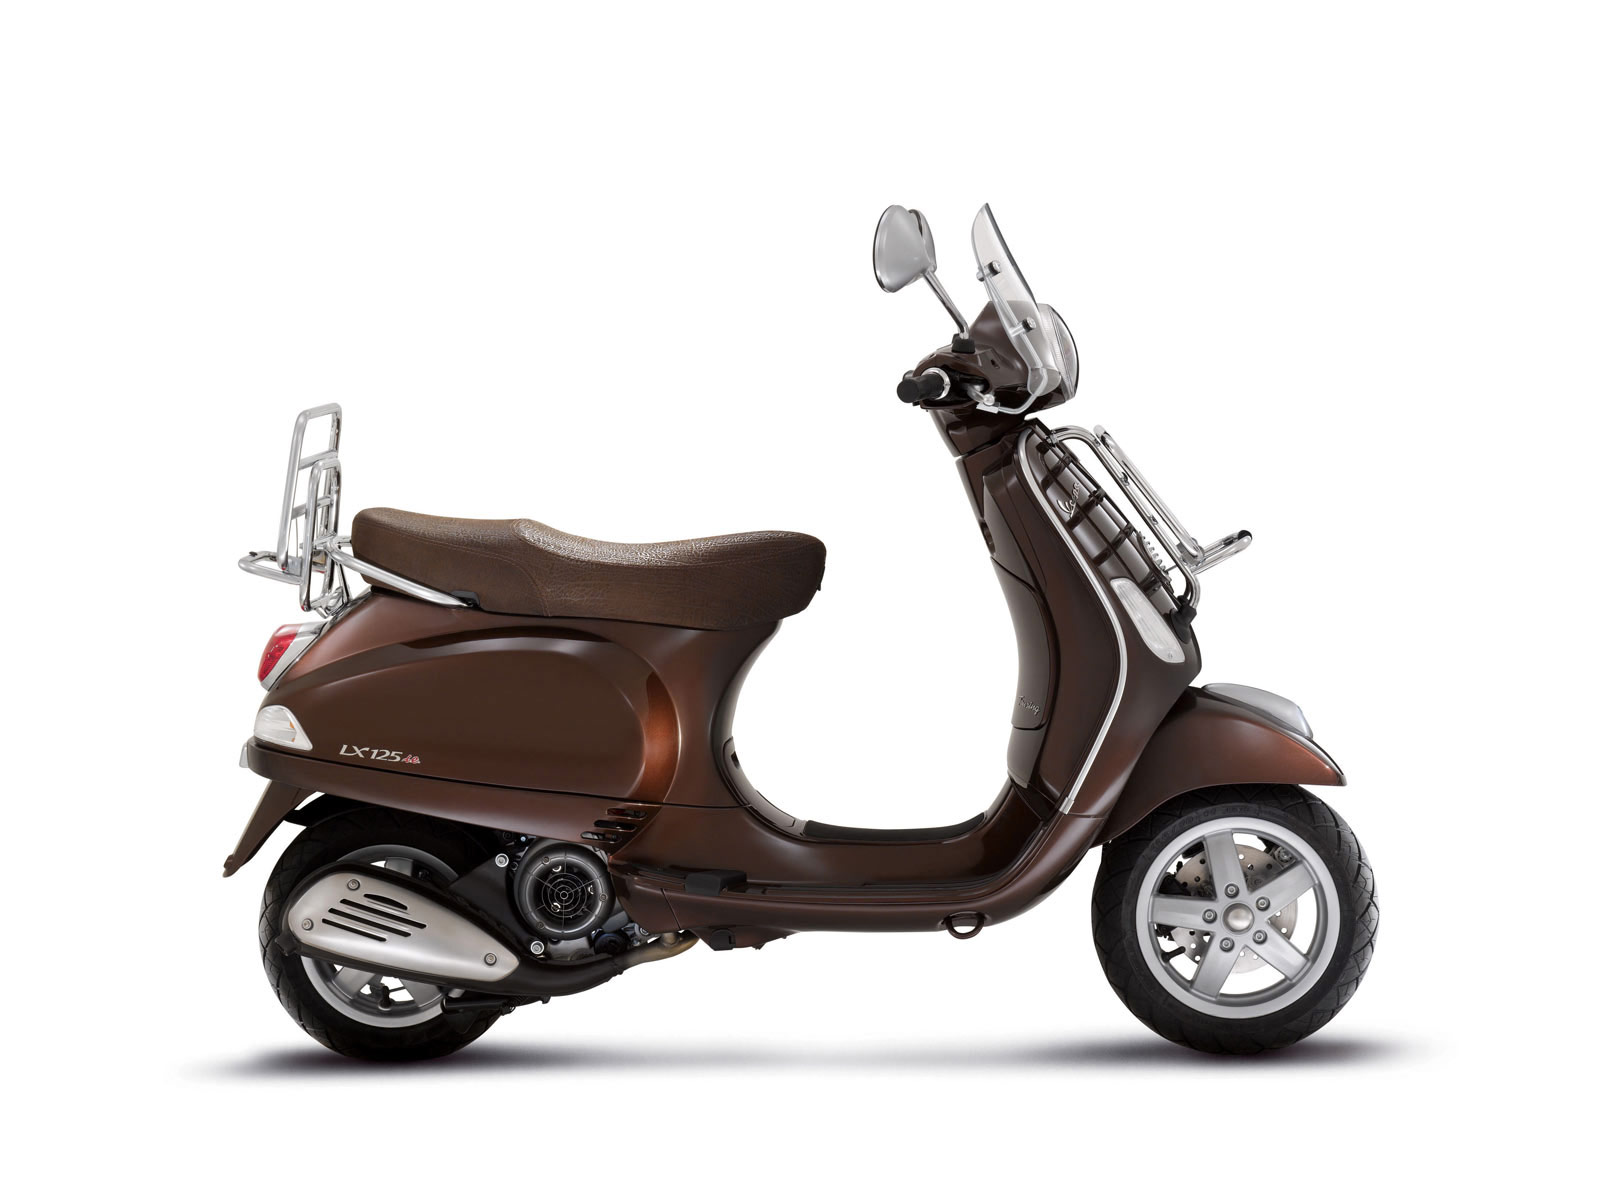 2010 vespa lx125ie accident lawyers info scooter pictures. Black Bedroom Furniture Sets. Home Design Ideas